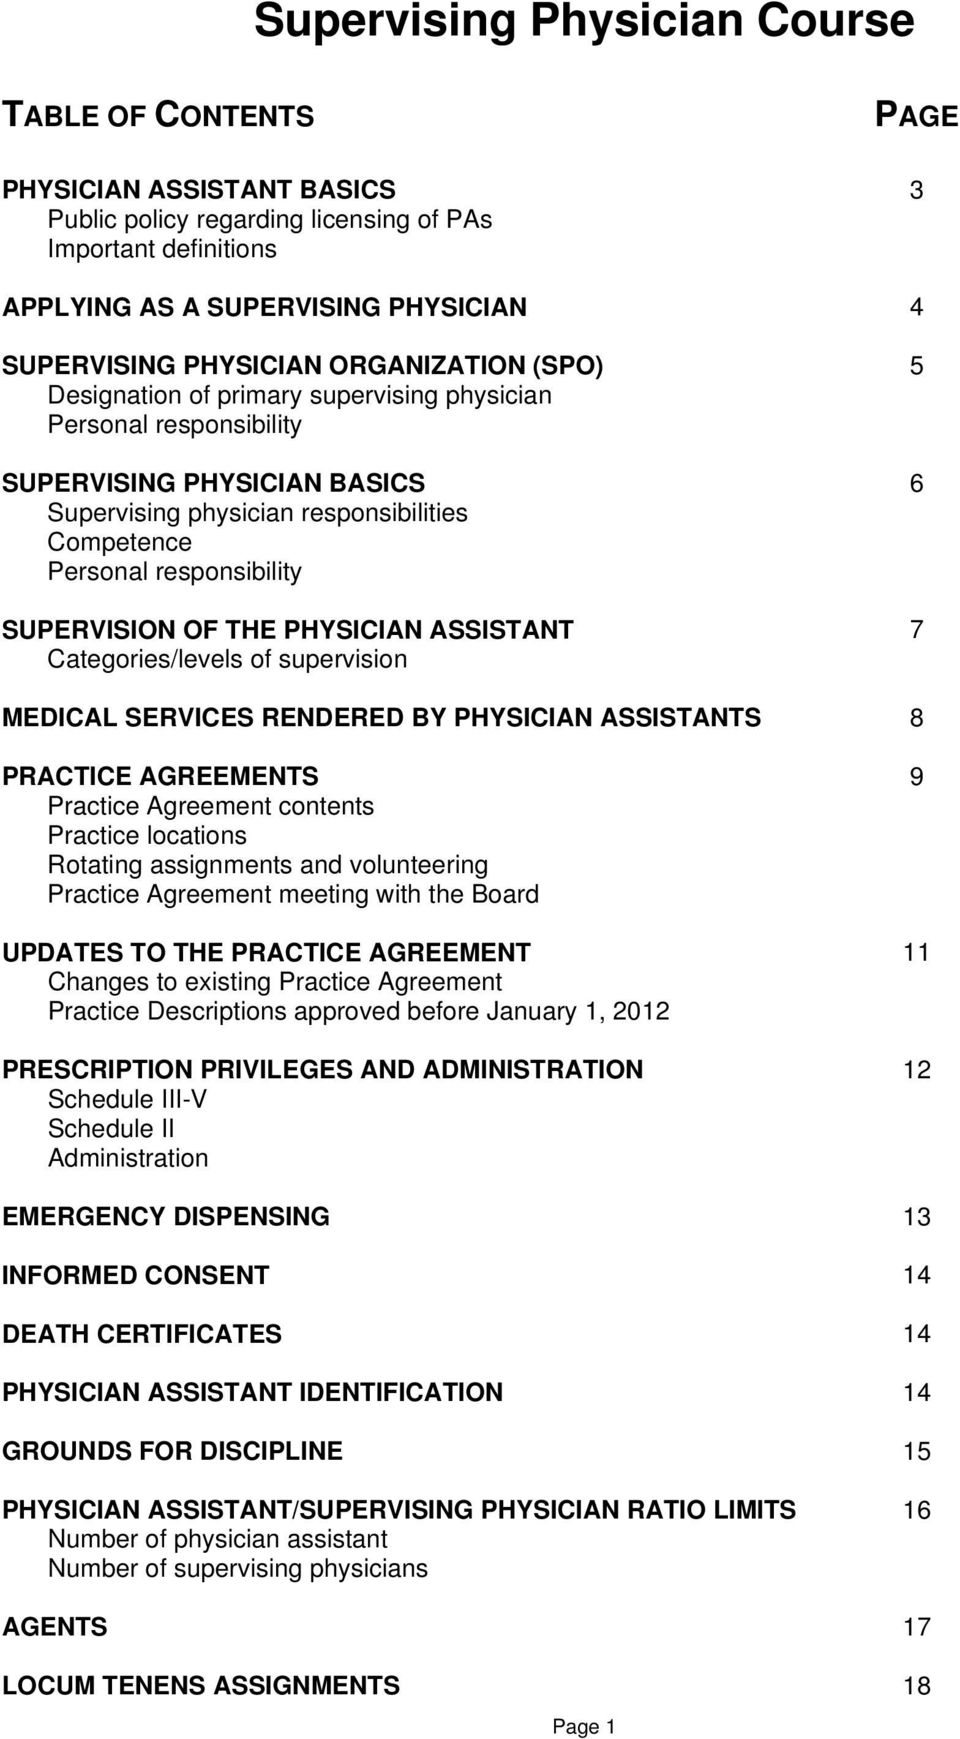 responsibility SUPERVISION OF THE PHYSICIAN ASSISTANT 7 Categories/levels of supervision MEDICAL SERVICES RENDERED BY PHYSICIAN ASSISTANTS 8 PRACTICE AGREEMENTS 9 Practice Agreement contents Practice